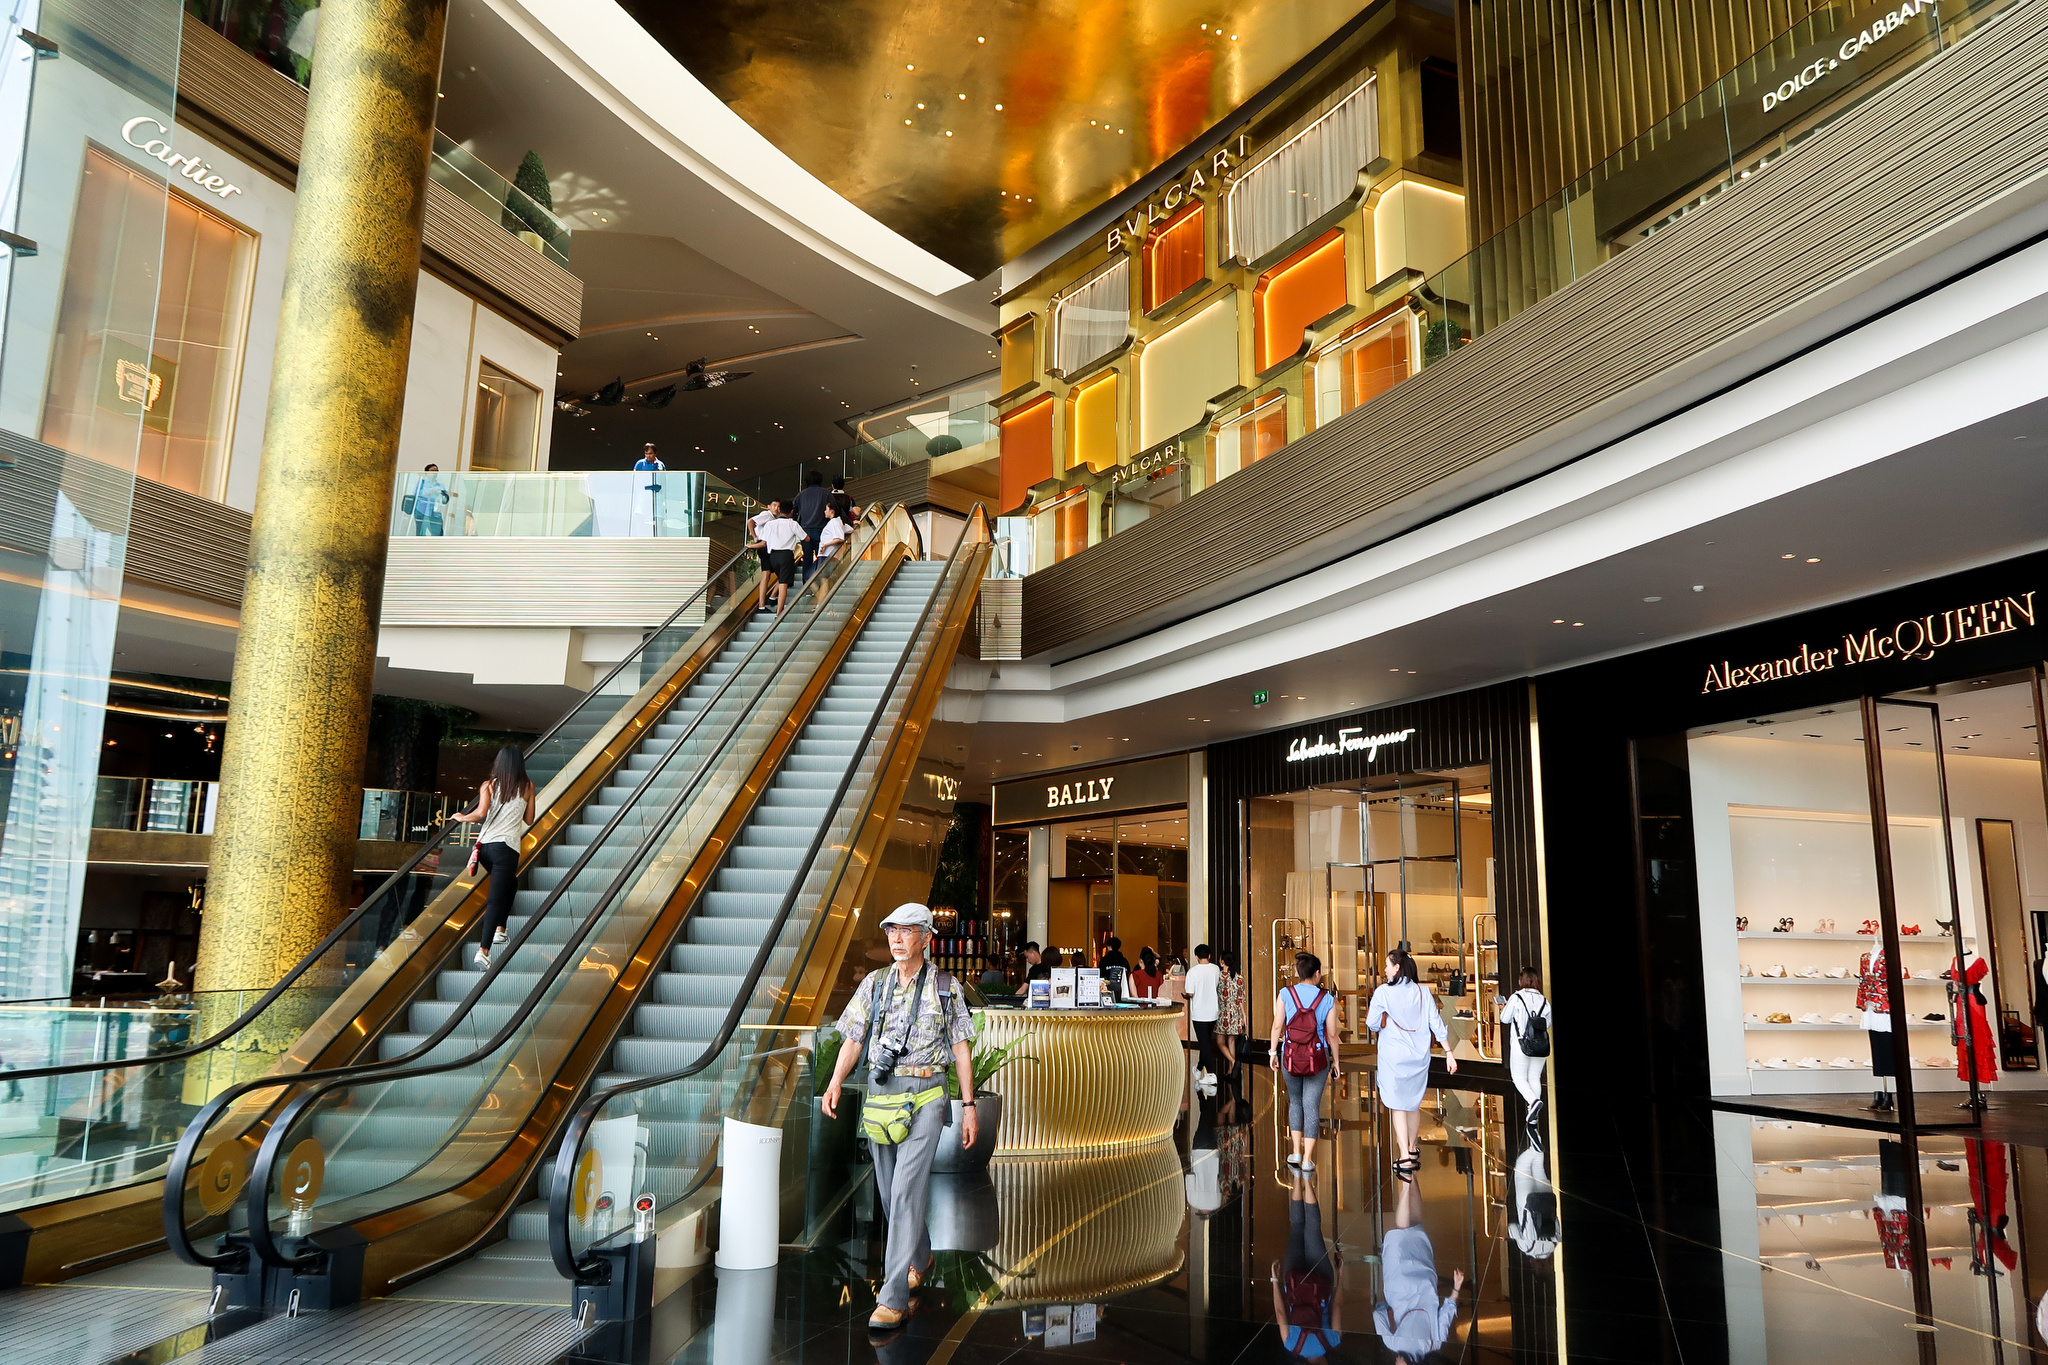 Inside the Iconsiam complex.